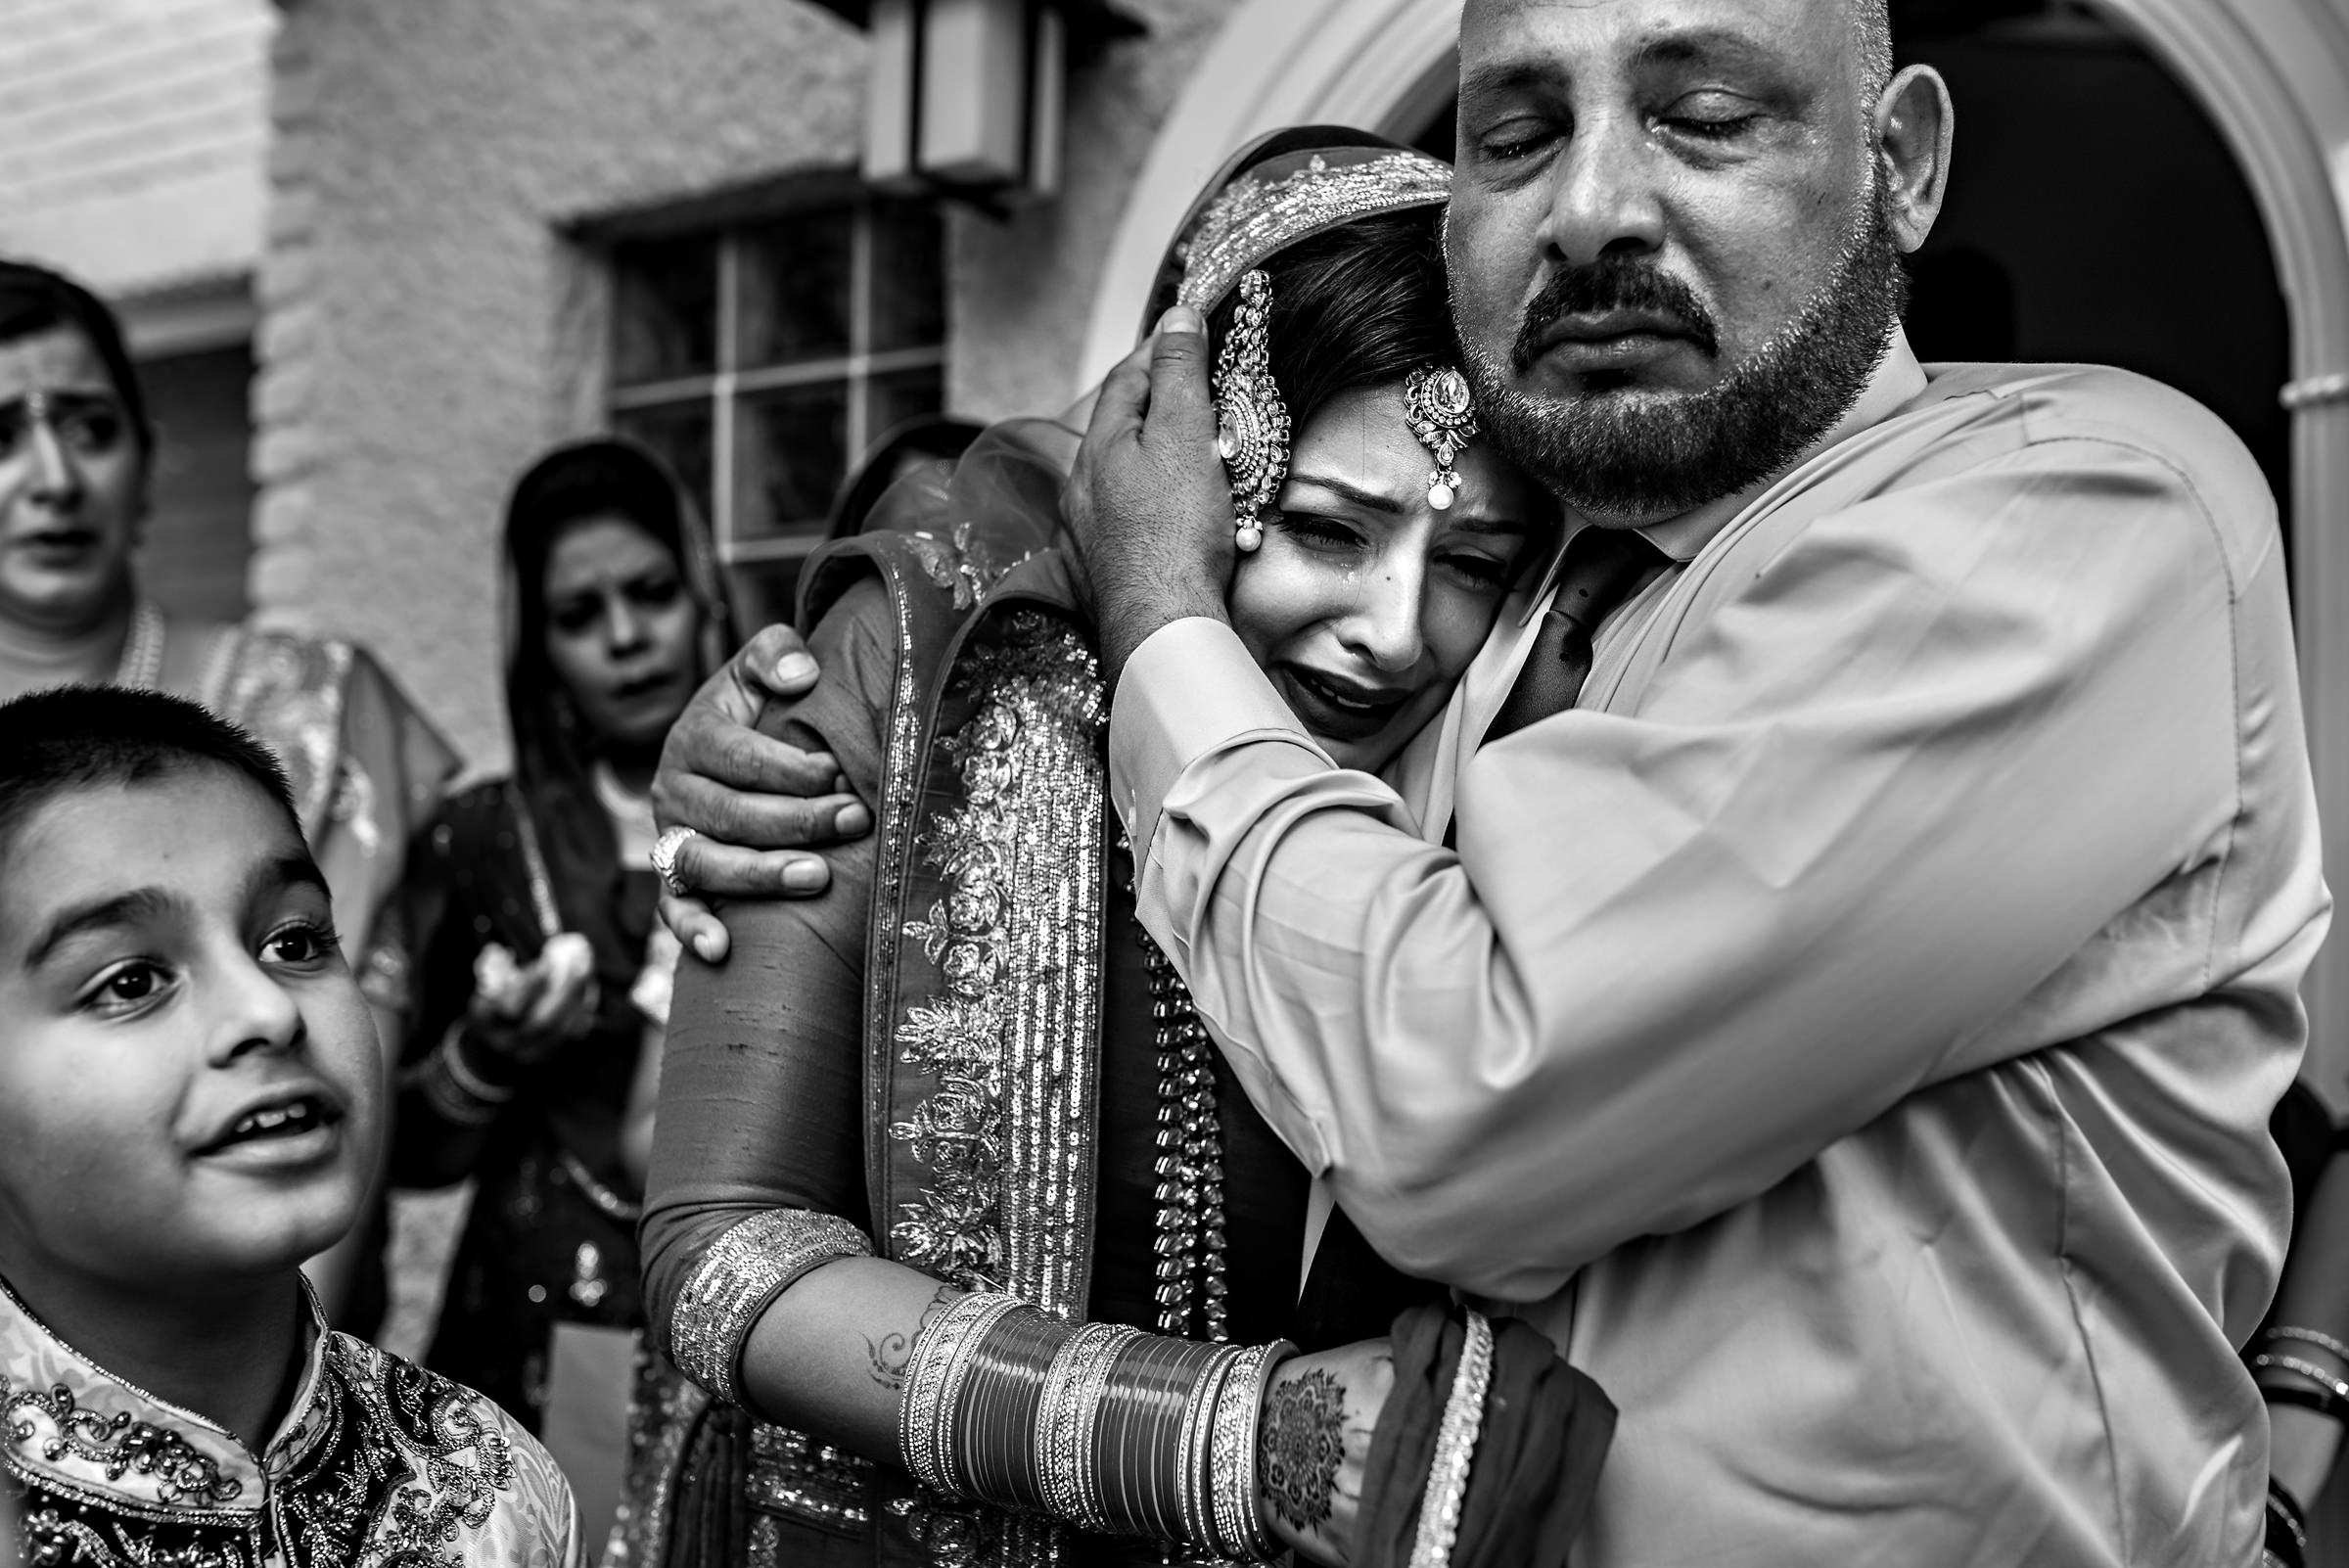 muslim-bride-and-father-embrace-moore-photography.jpg